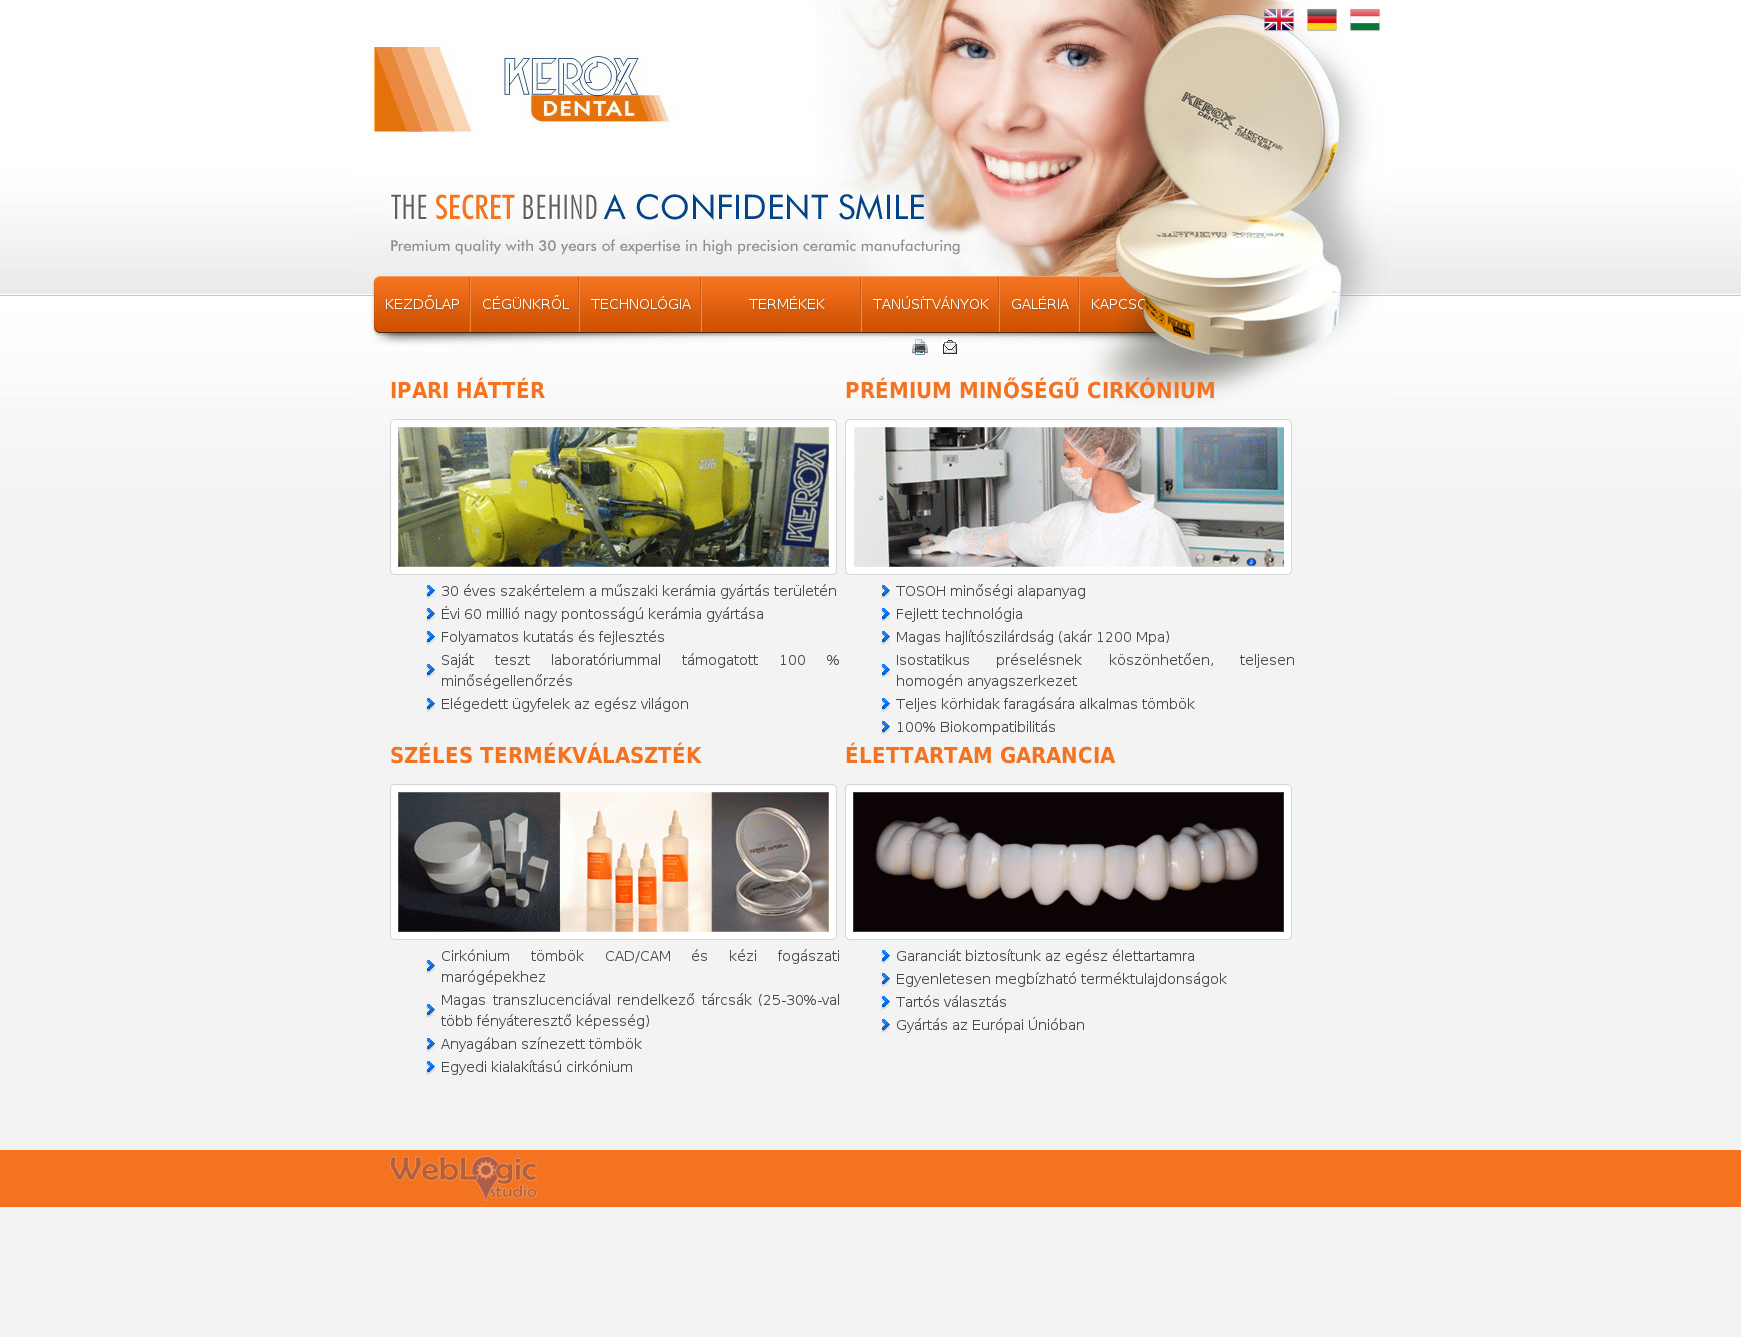 www.keroxdental.net